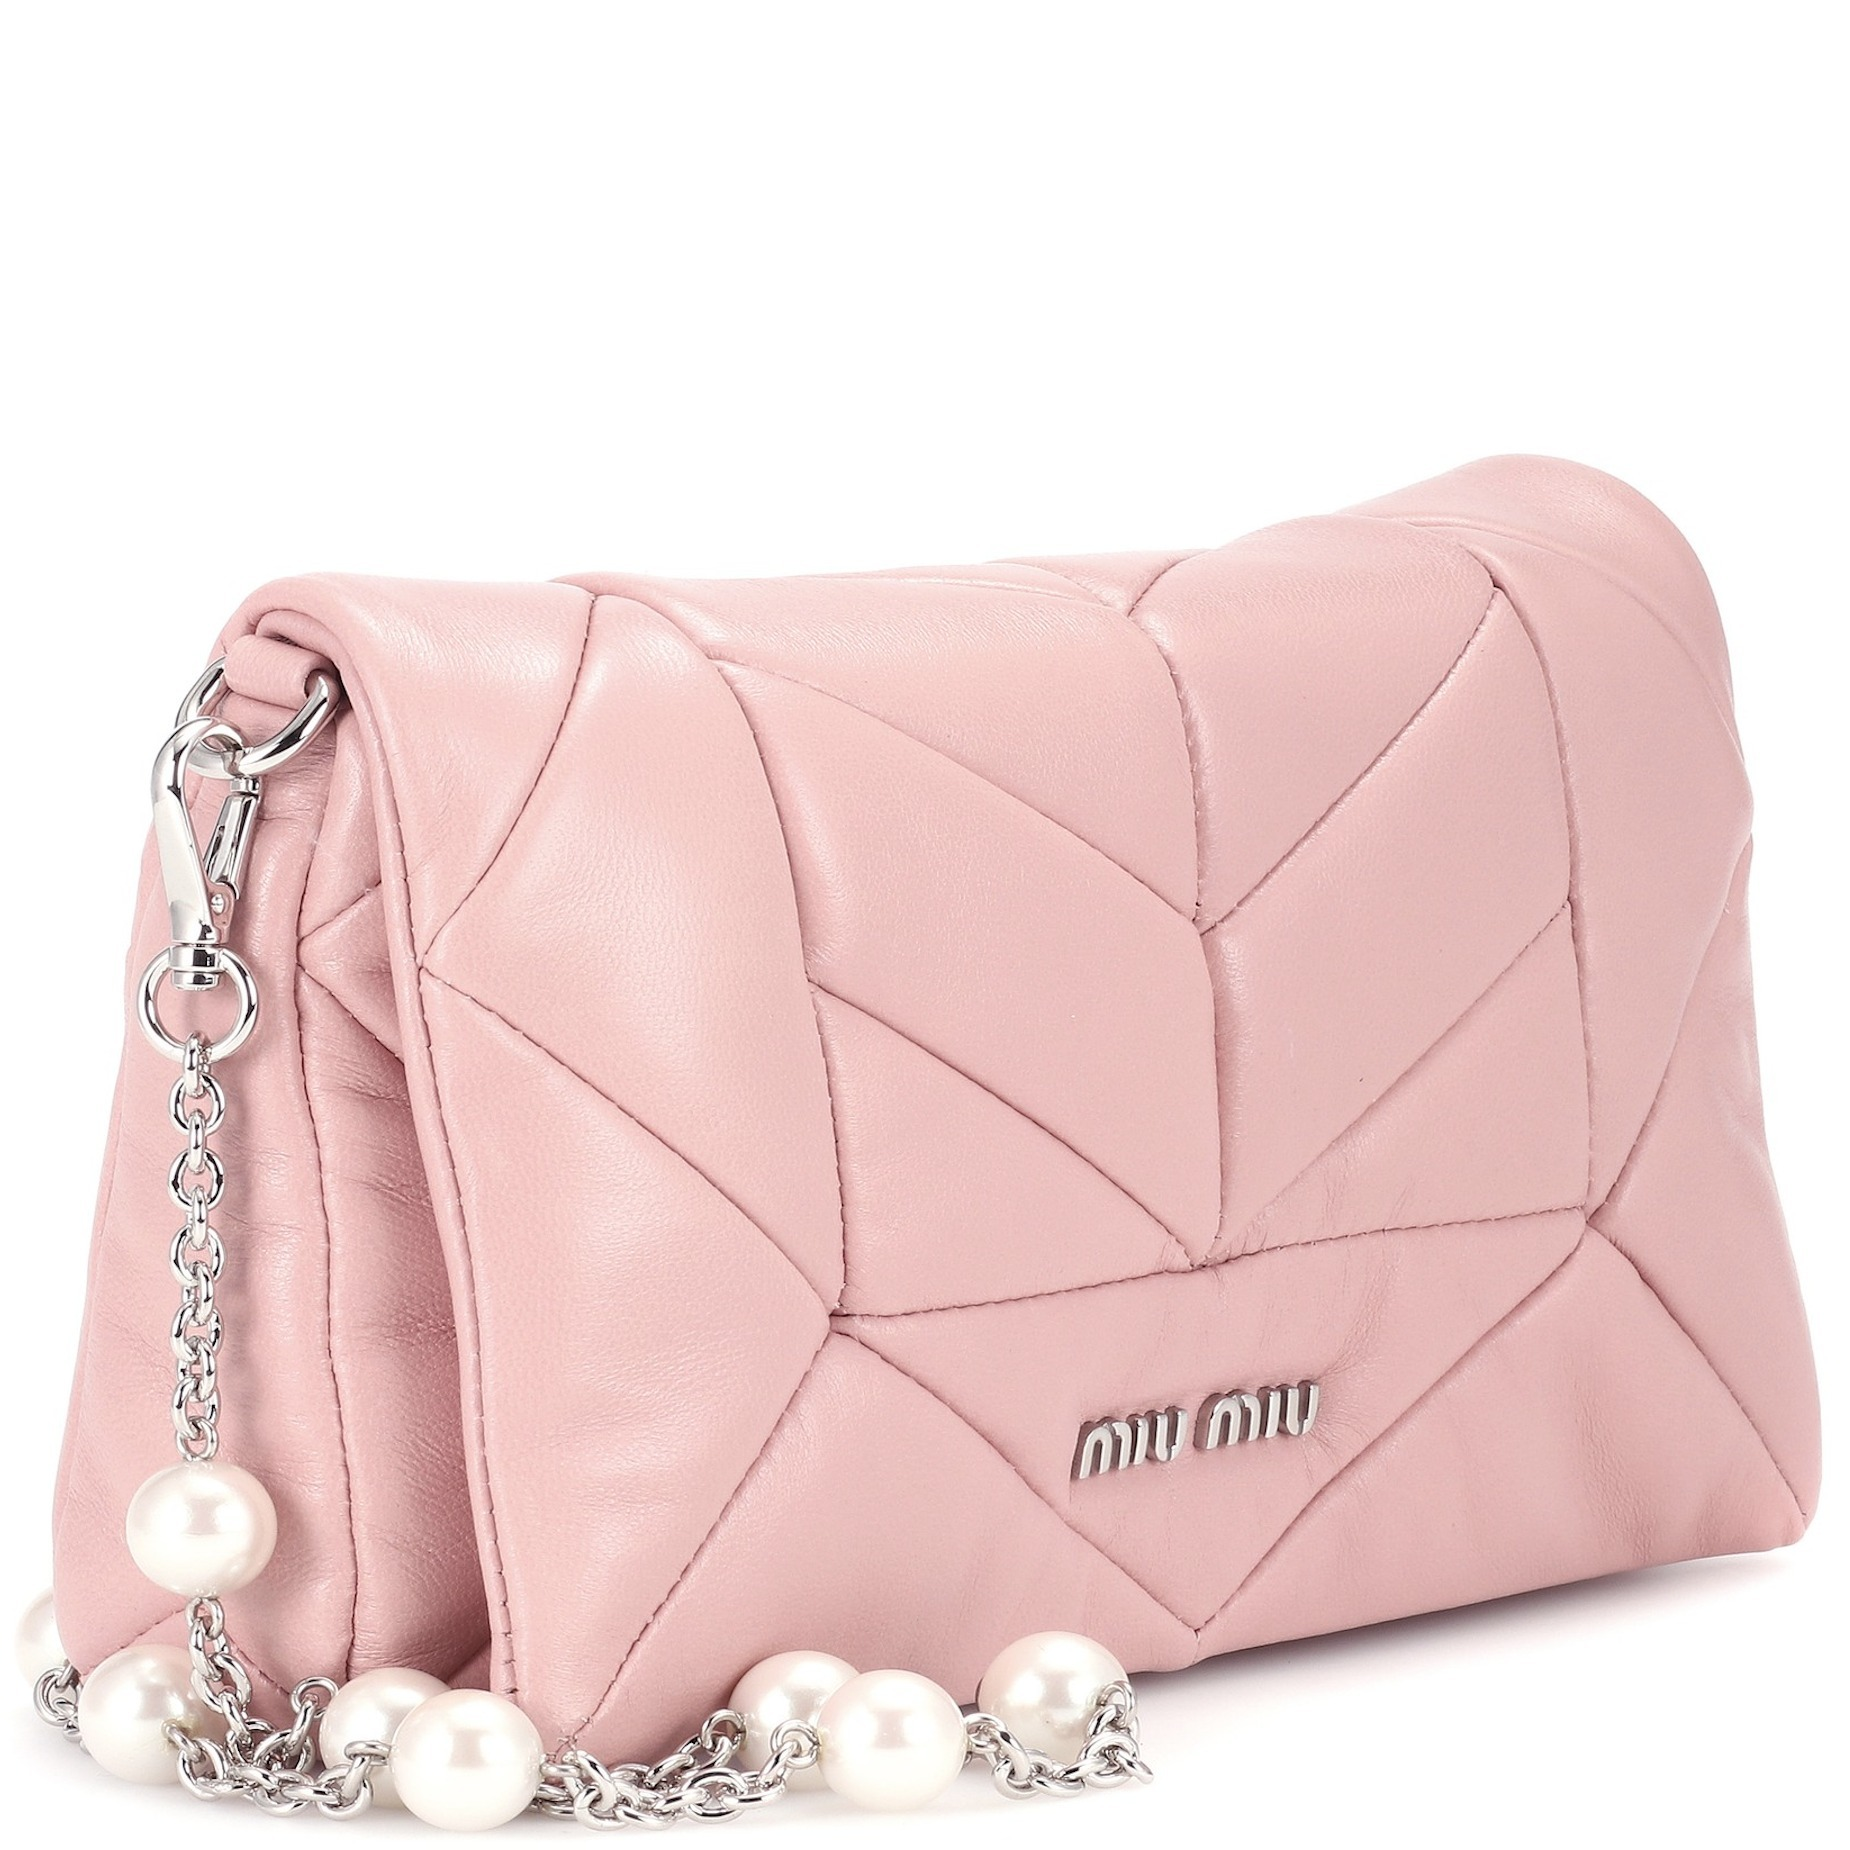 MM337 QUILTED NAPPA LEATHER SHOULDER BAG